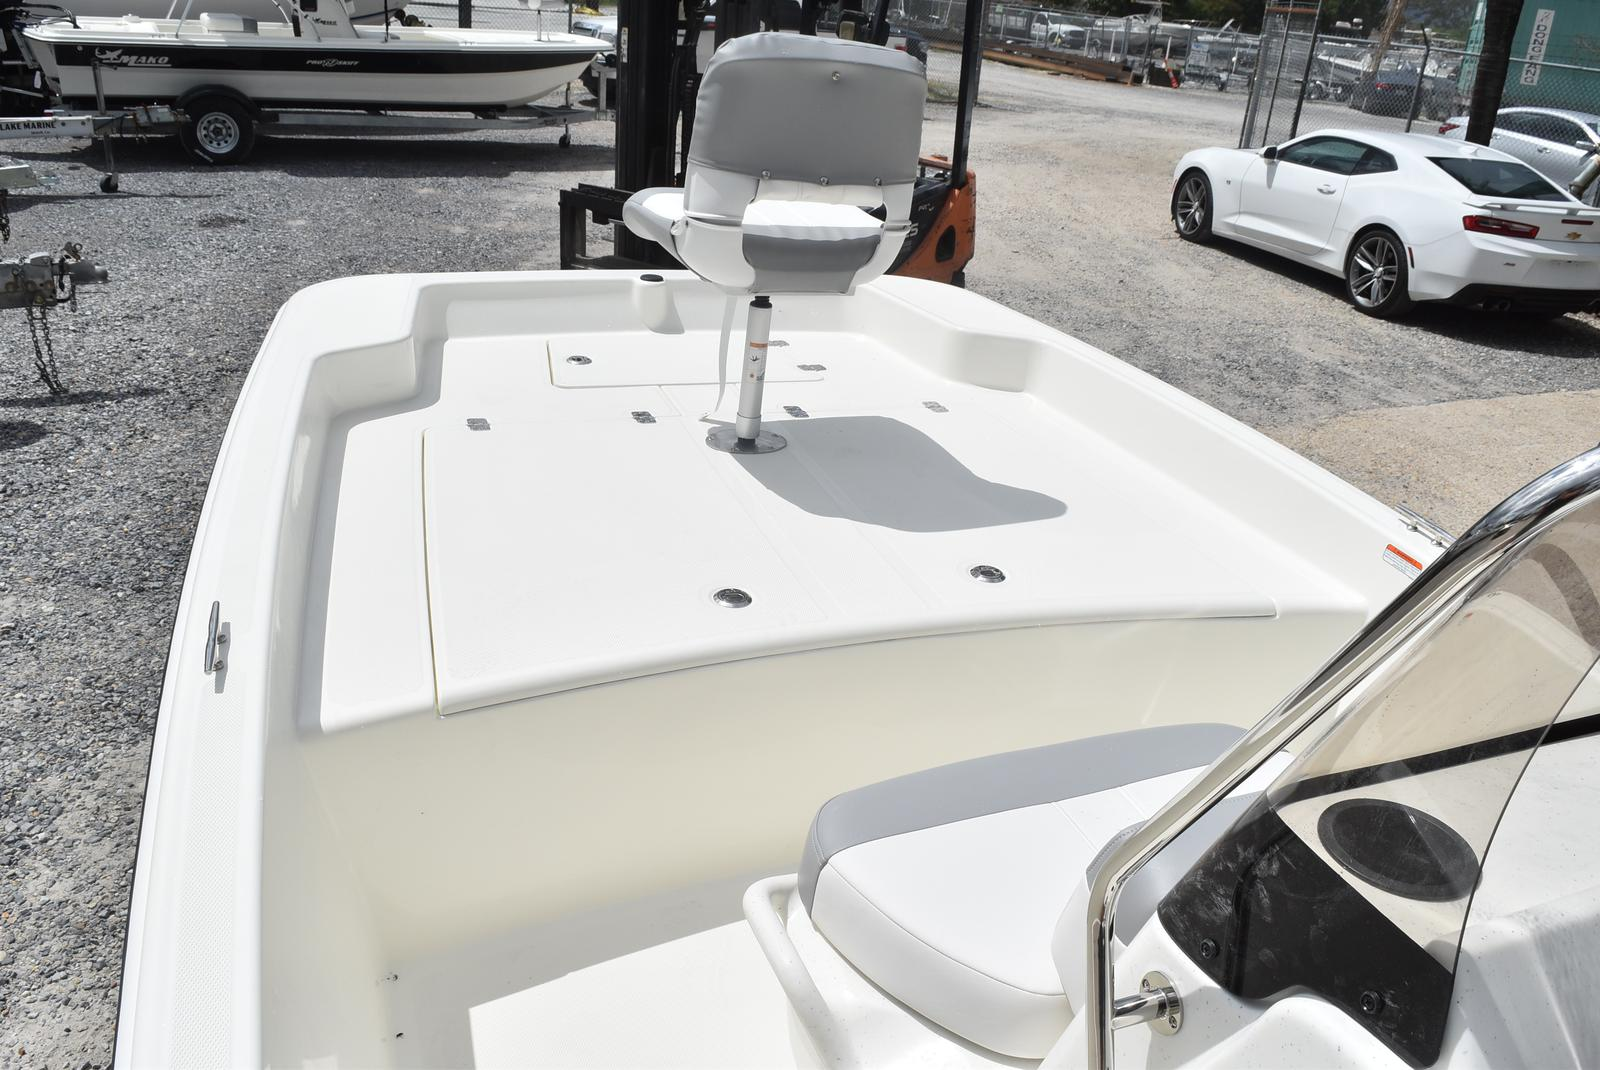 2020 Mako boat for sale, model of the boat is Pro Skiff 17, 75 ELPT & Image # 391 of 702